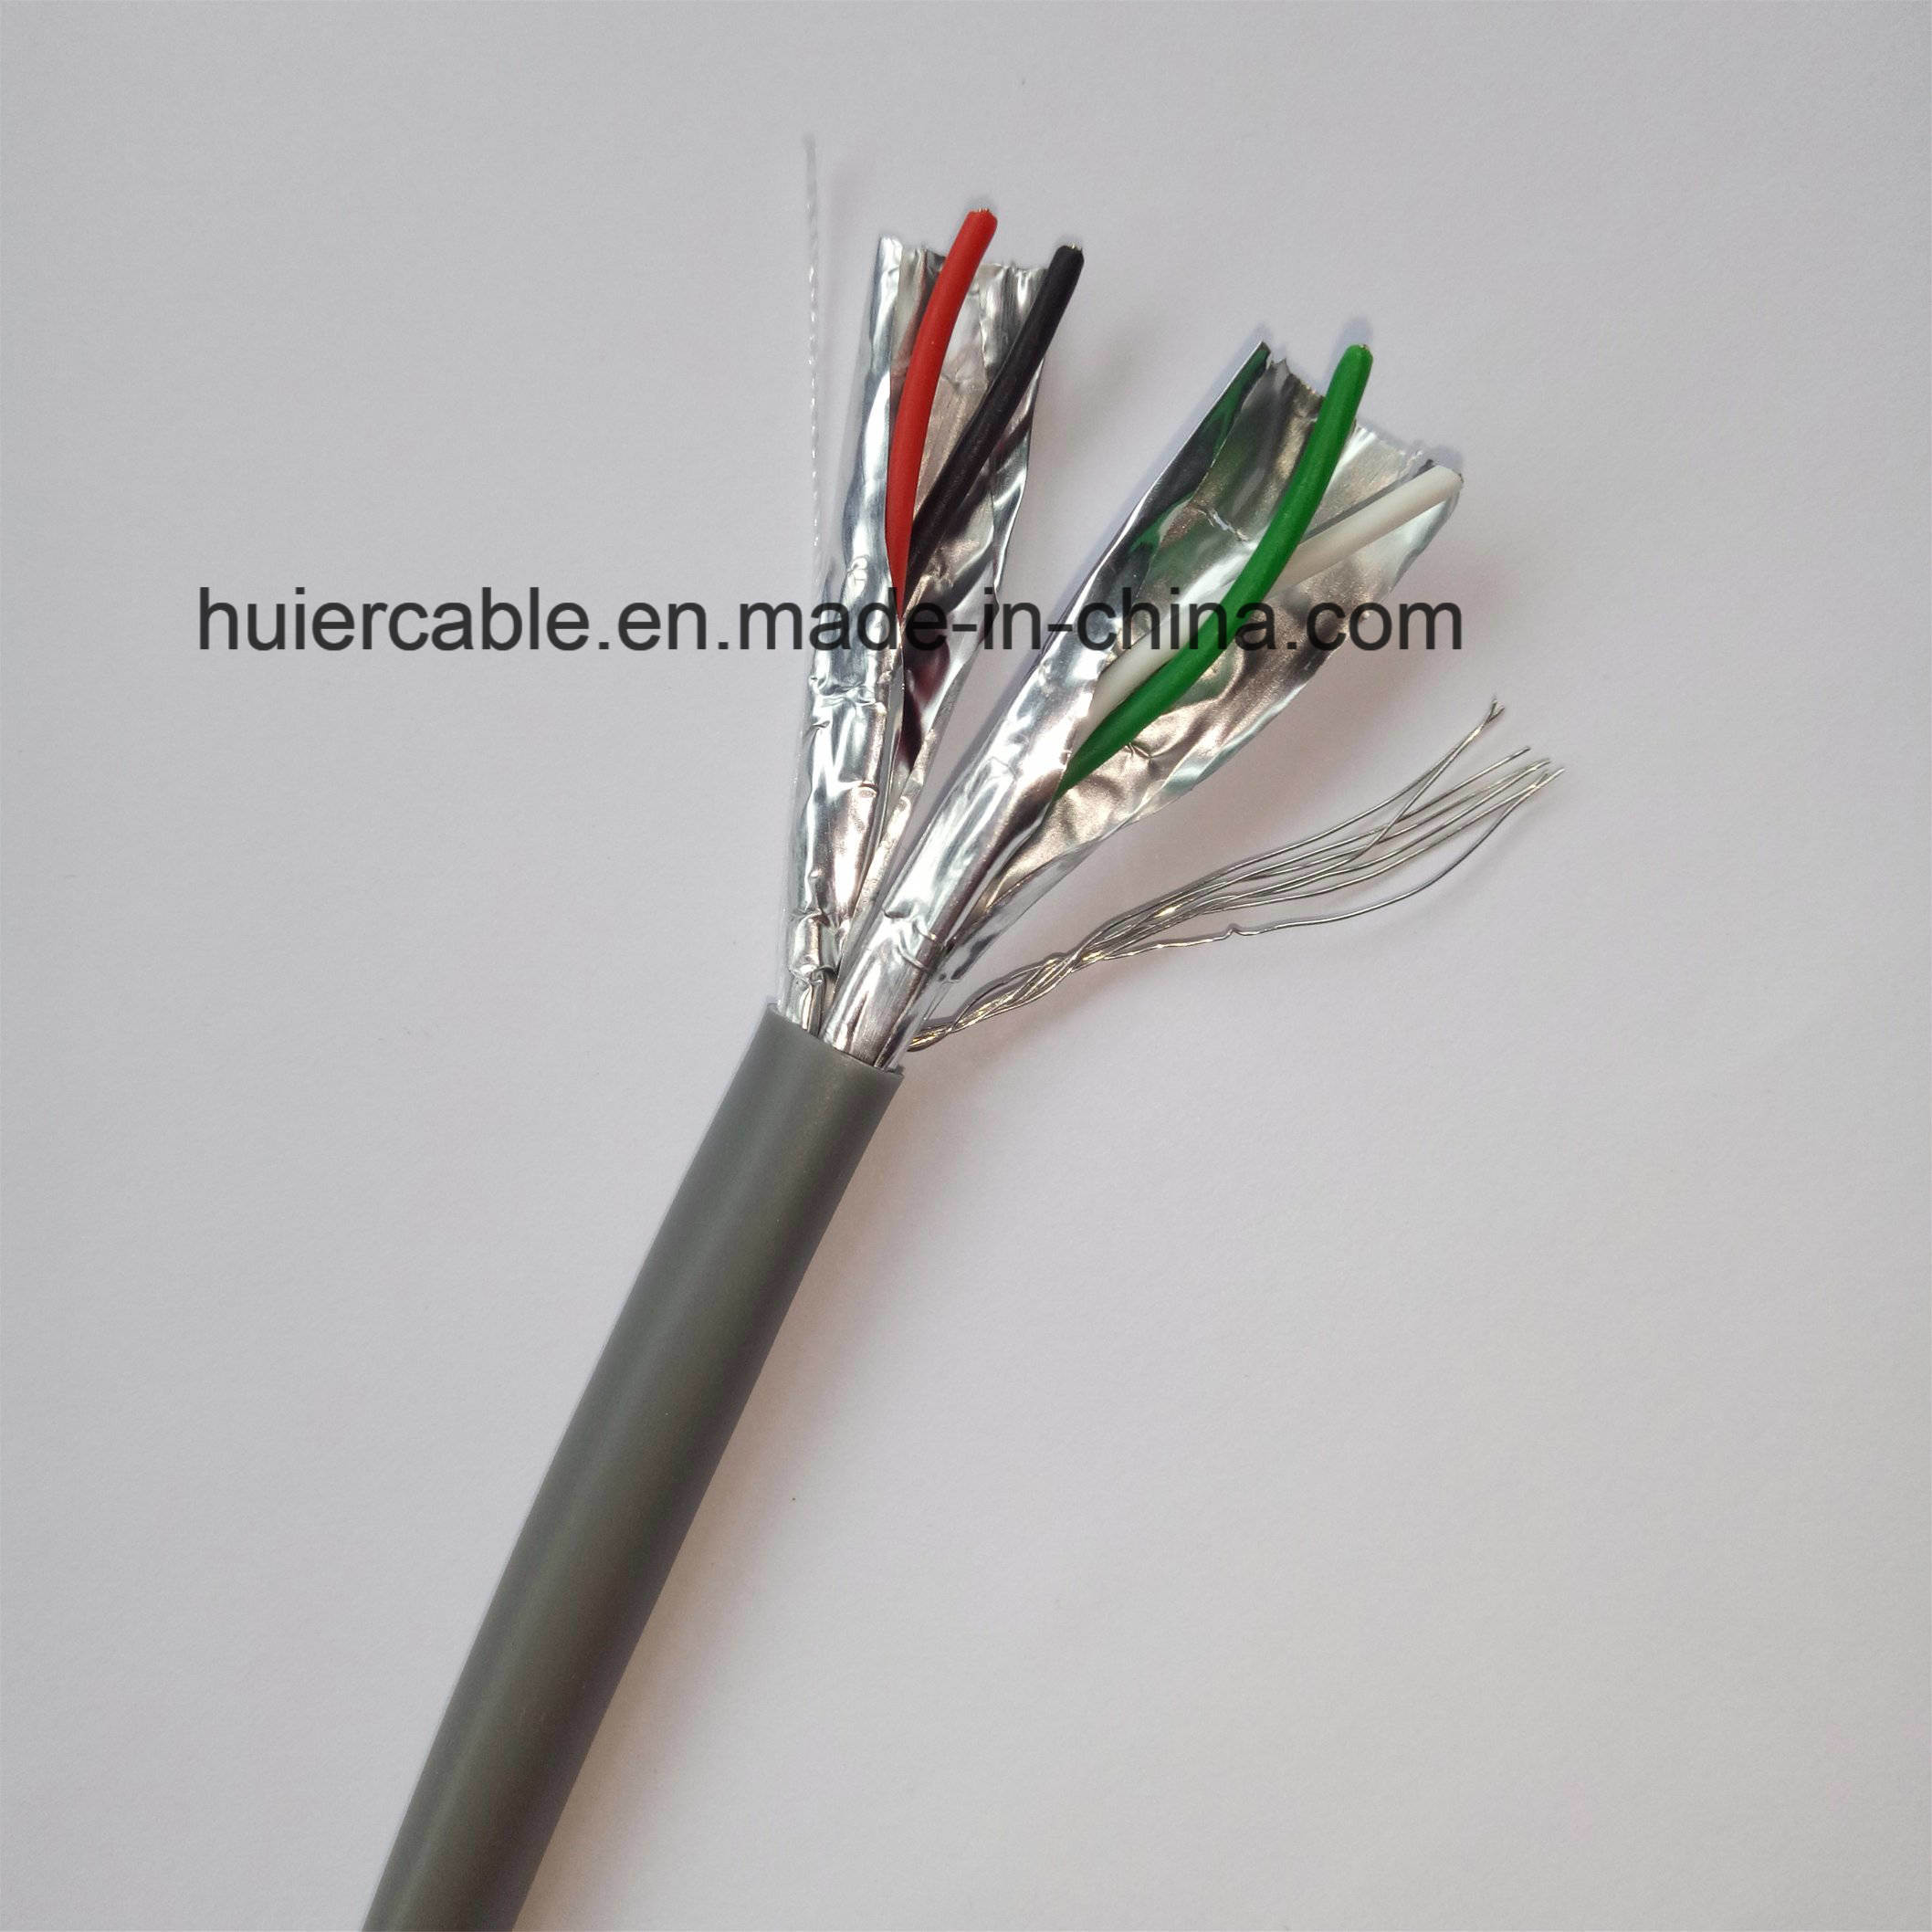 China Security Alarm Cable, Shielded by Pair, 2 Pairs (4 Cores ...